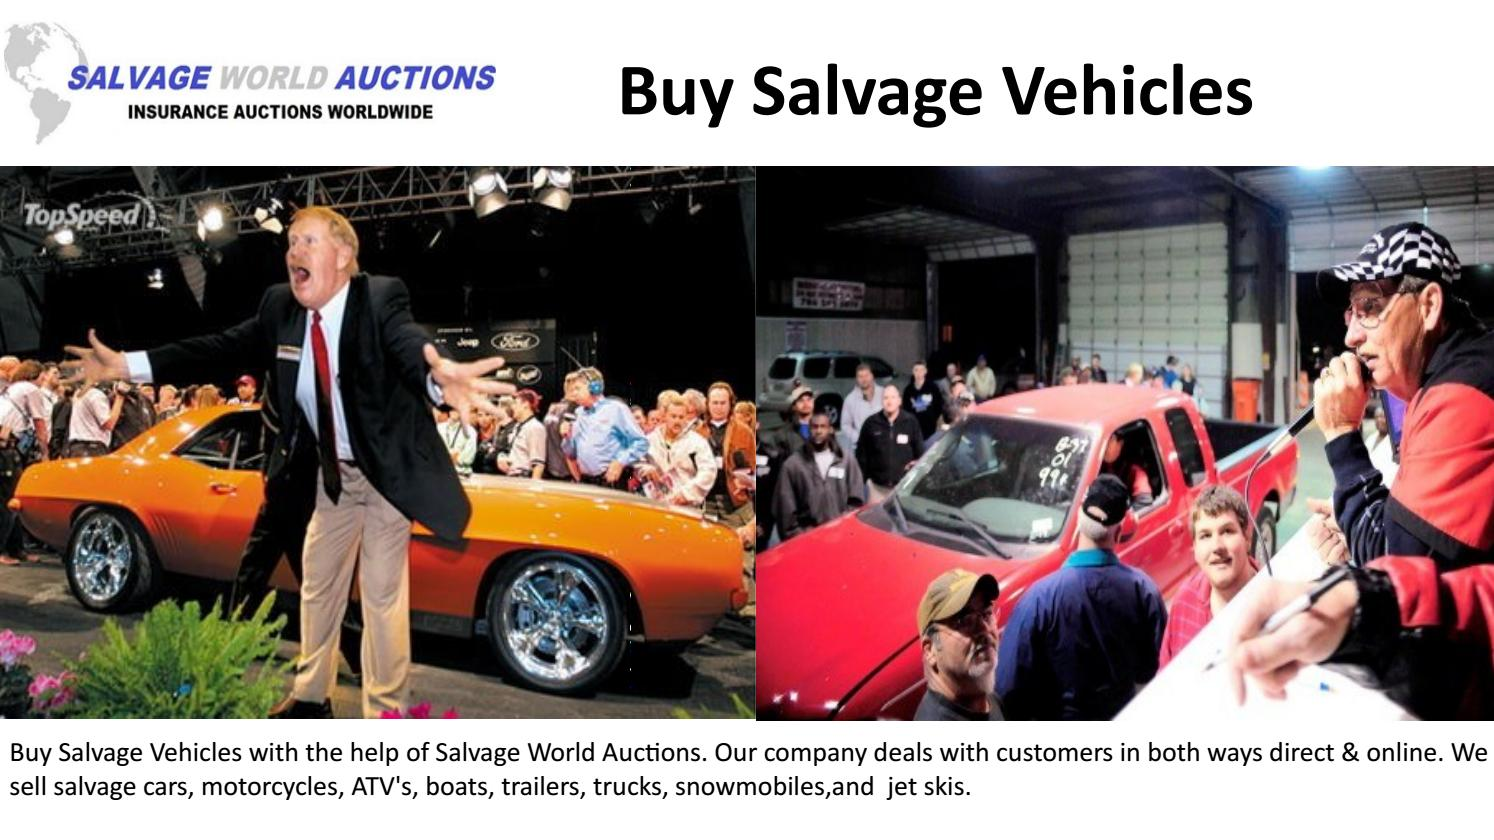 Buy Salvage Vehicles-Slavage world auctions by Salvage World ...